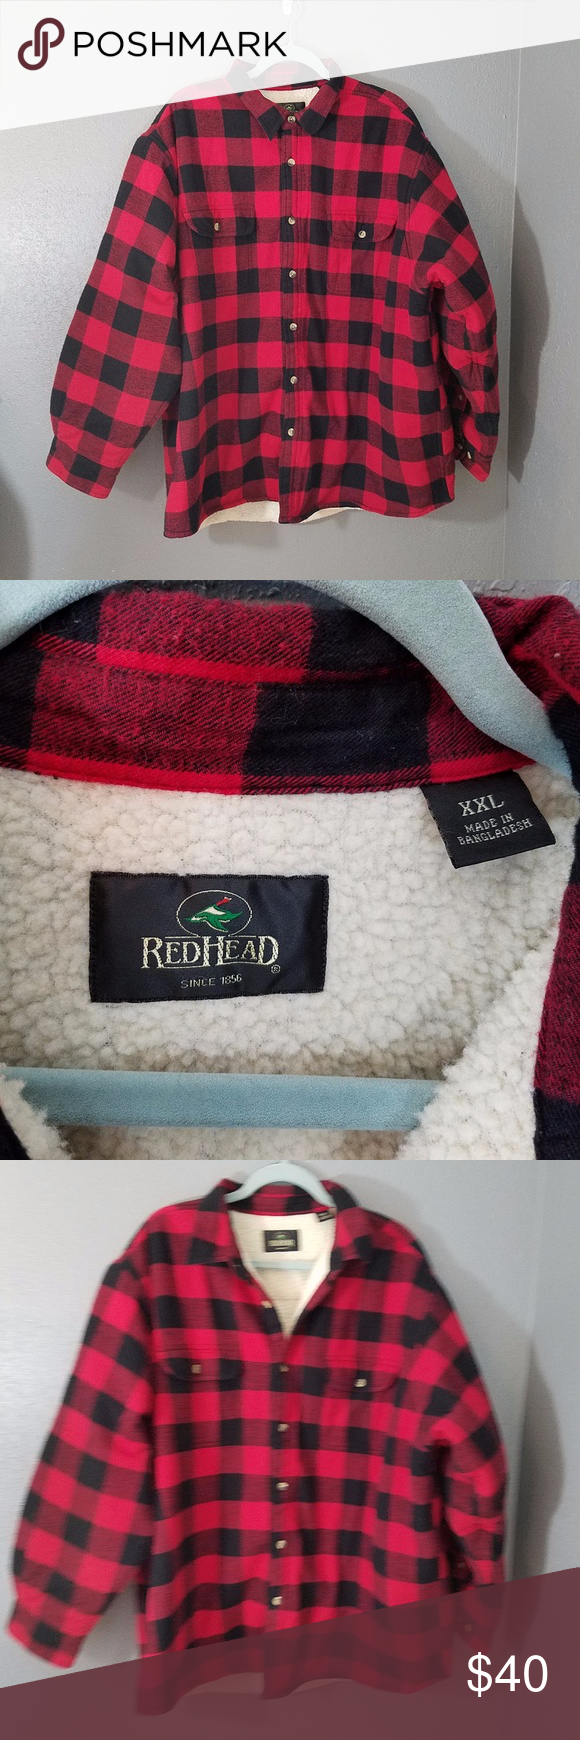 Flannel jacket with wool lining  RedHead Lined Flannel XXL Red Black Buffalo Check RedHead Lined